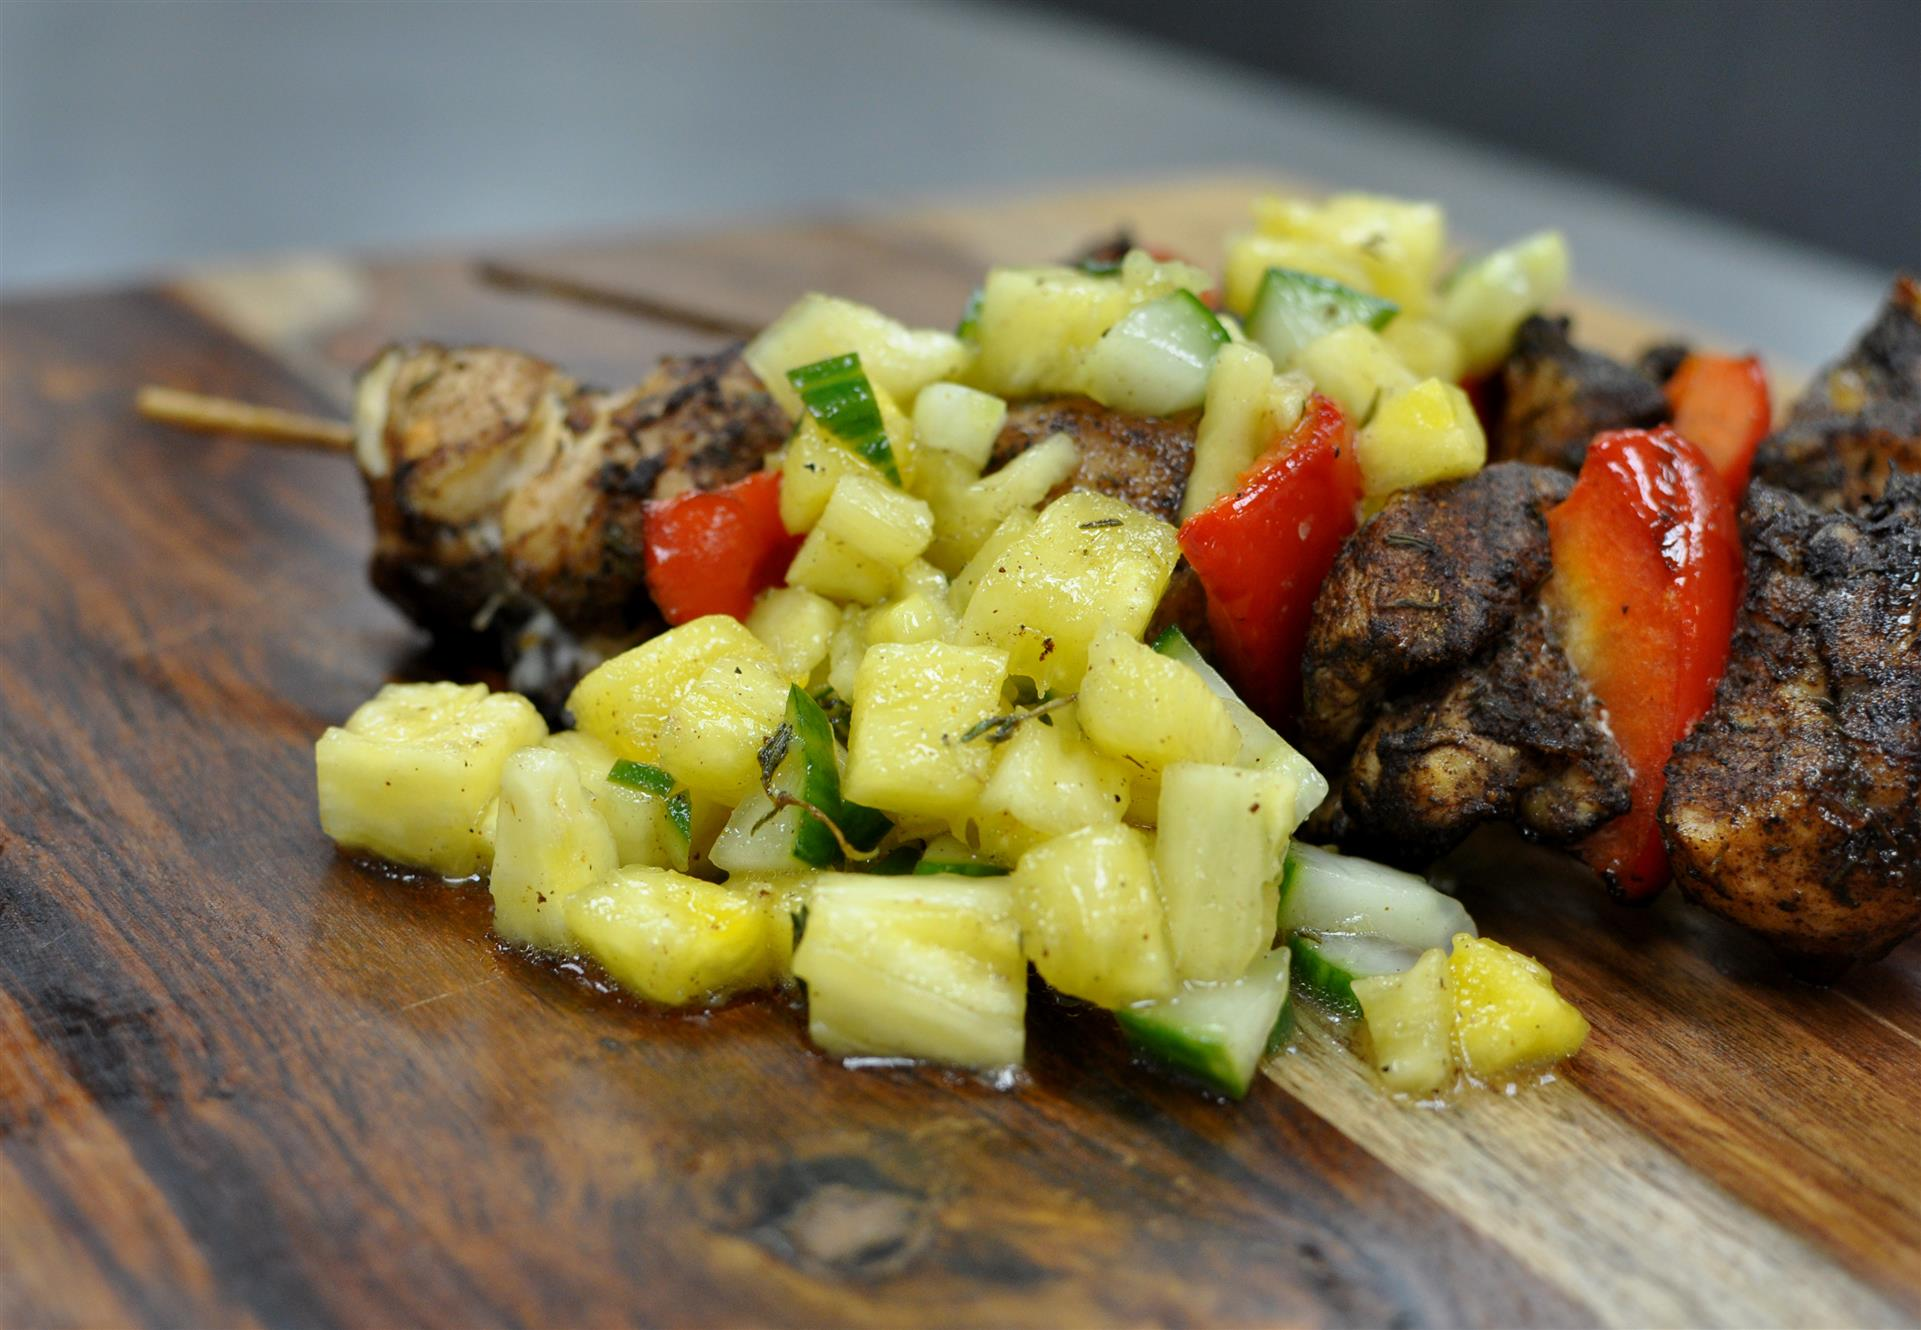 Steak kabob topped with sliced pineapple salad